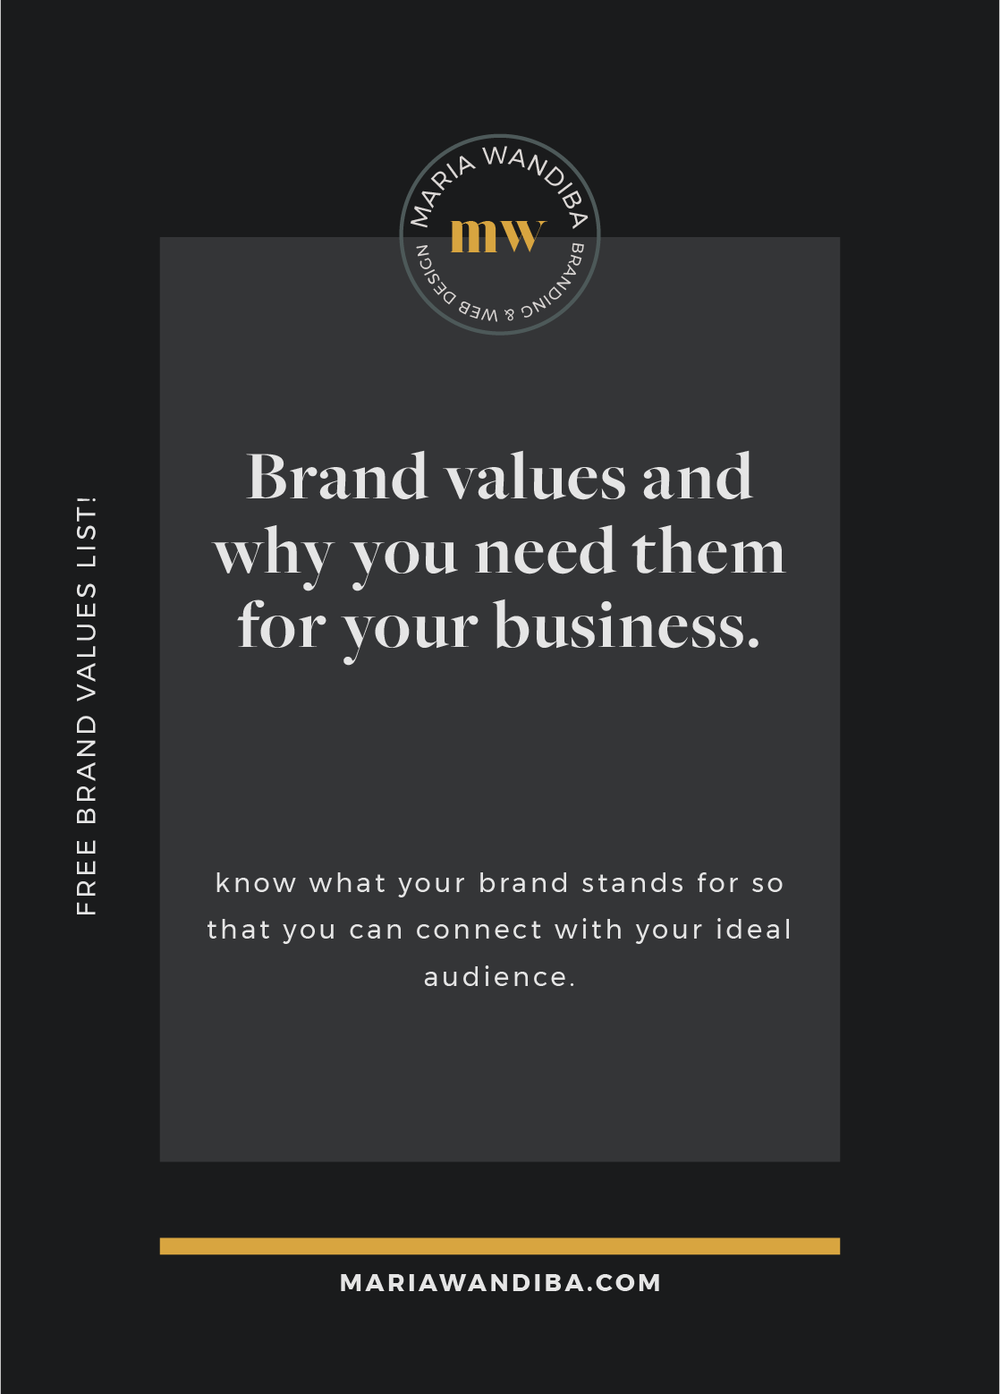 brand-values-for-your-business.png